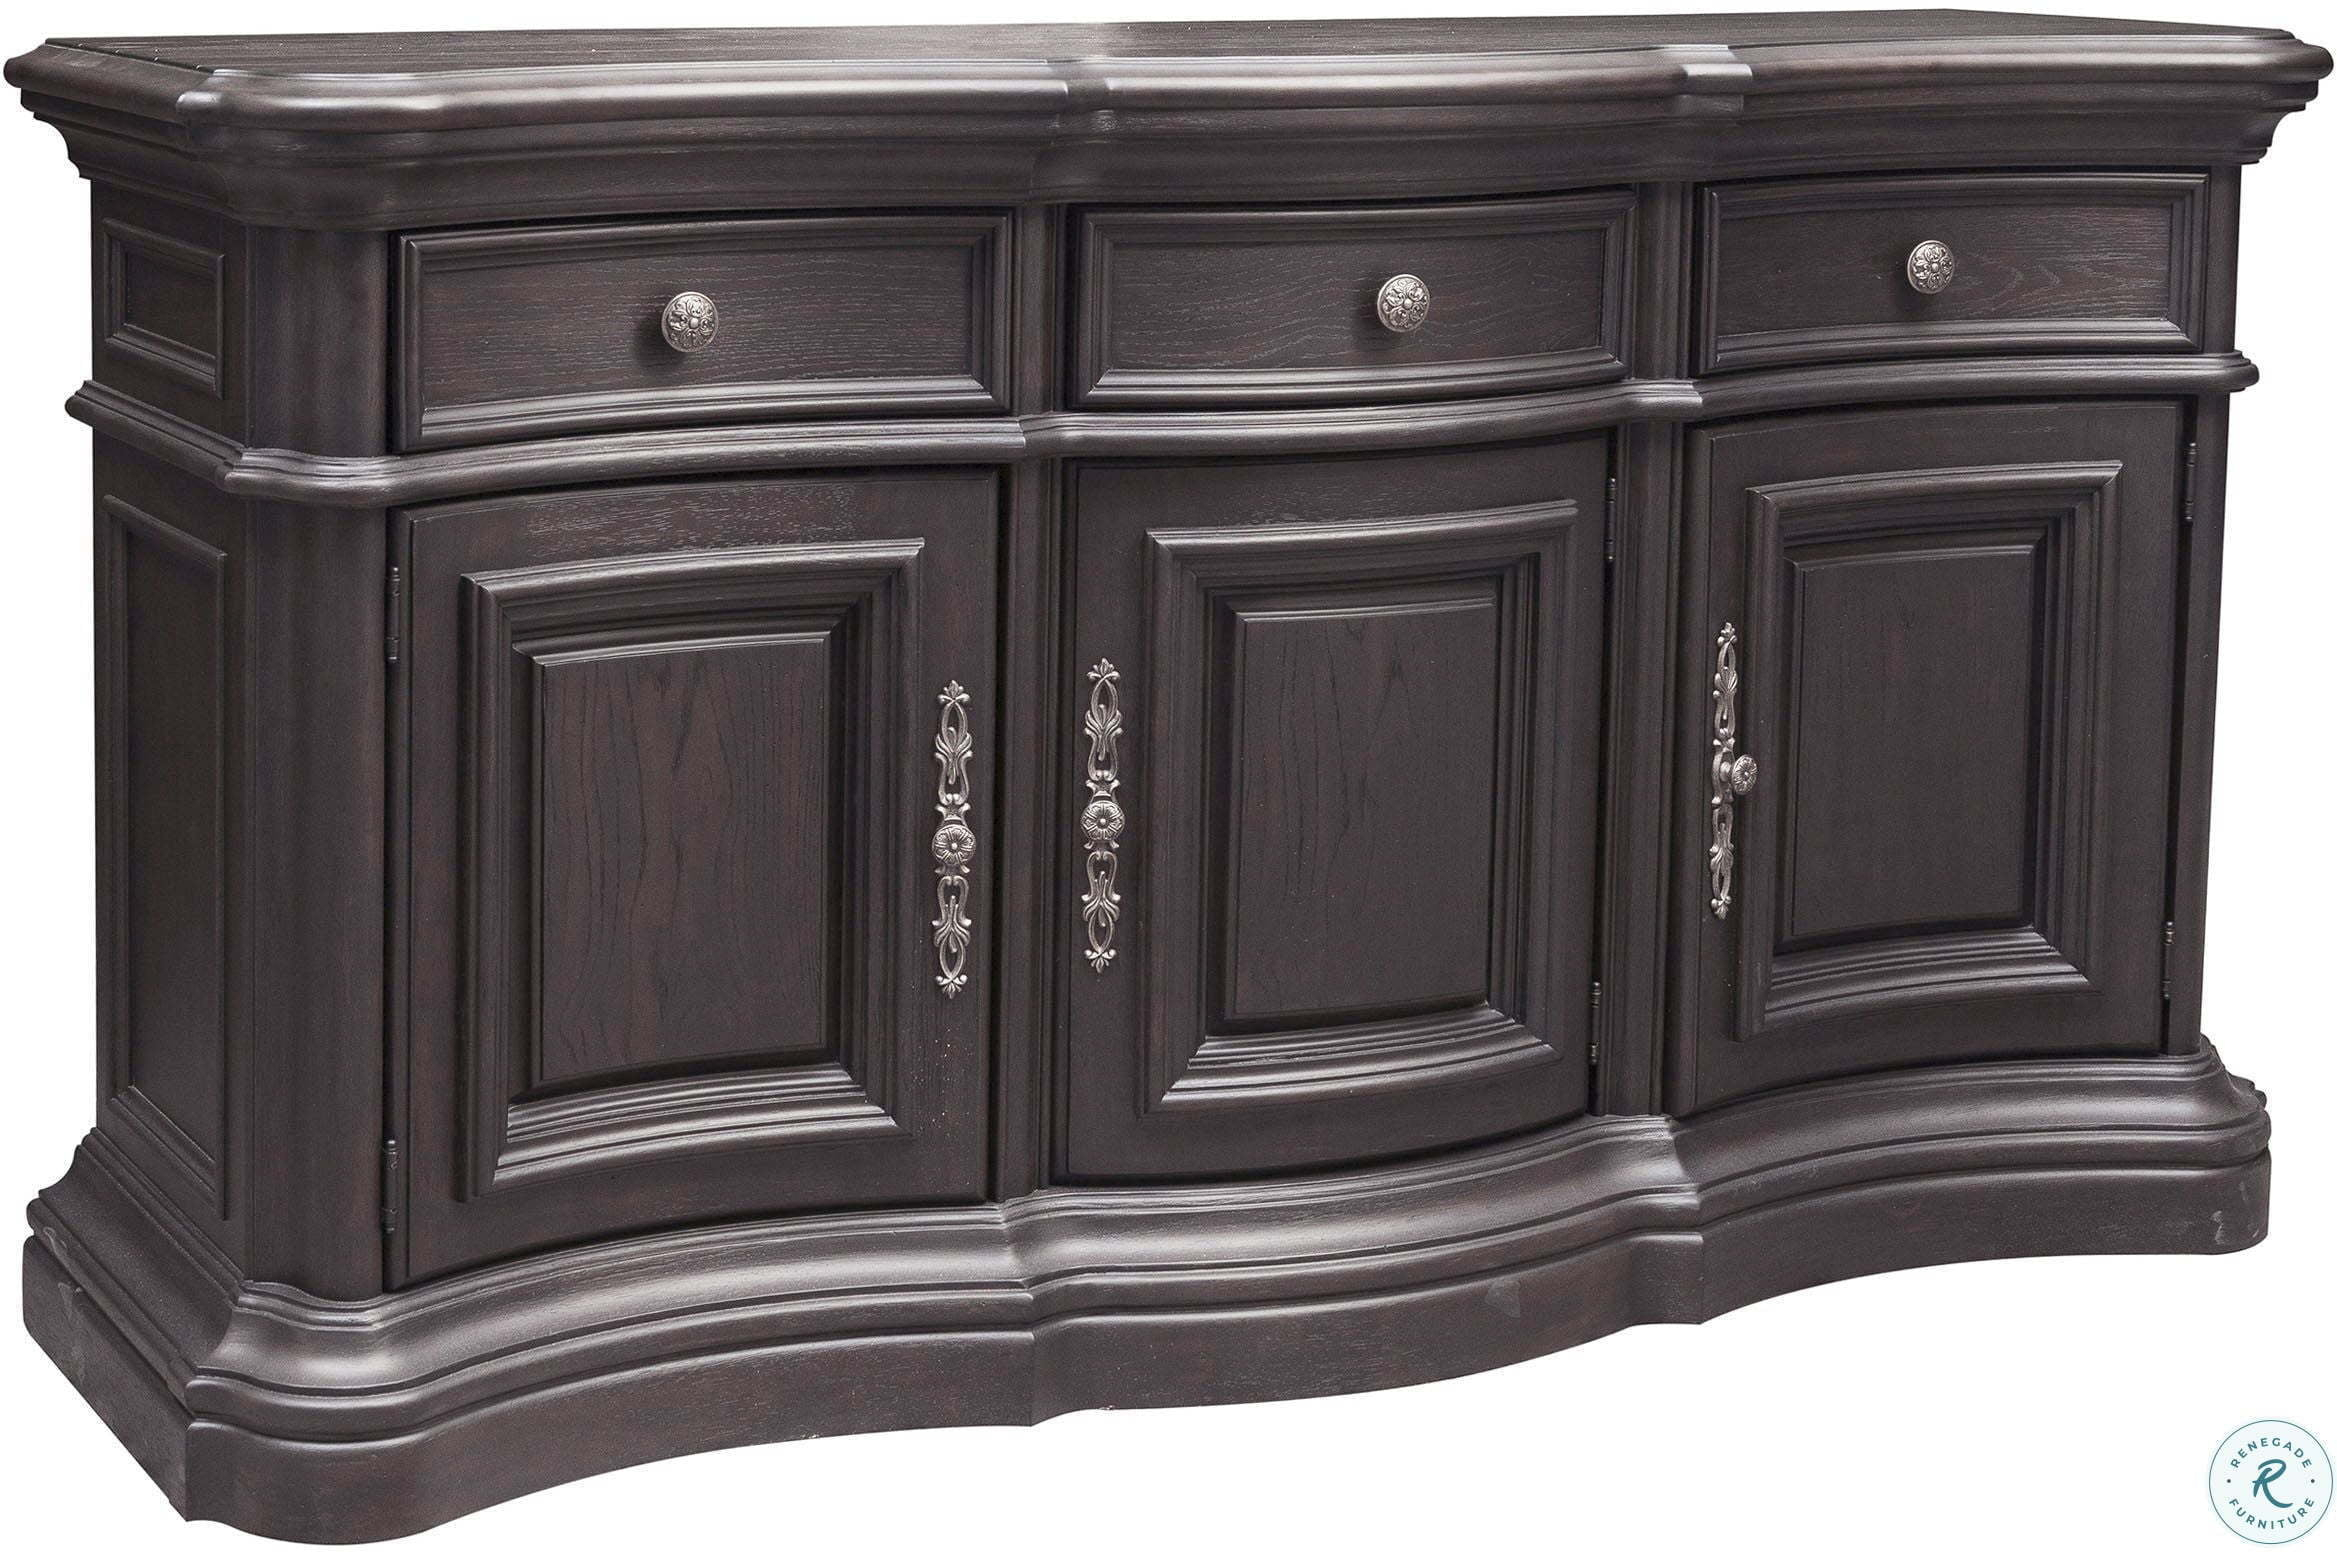 Palisade Distressed Dark Brown Sideboard From Pulaski inside Palisade Sideboards (Image 20 of 30)